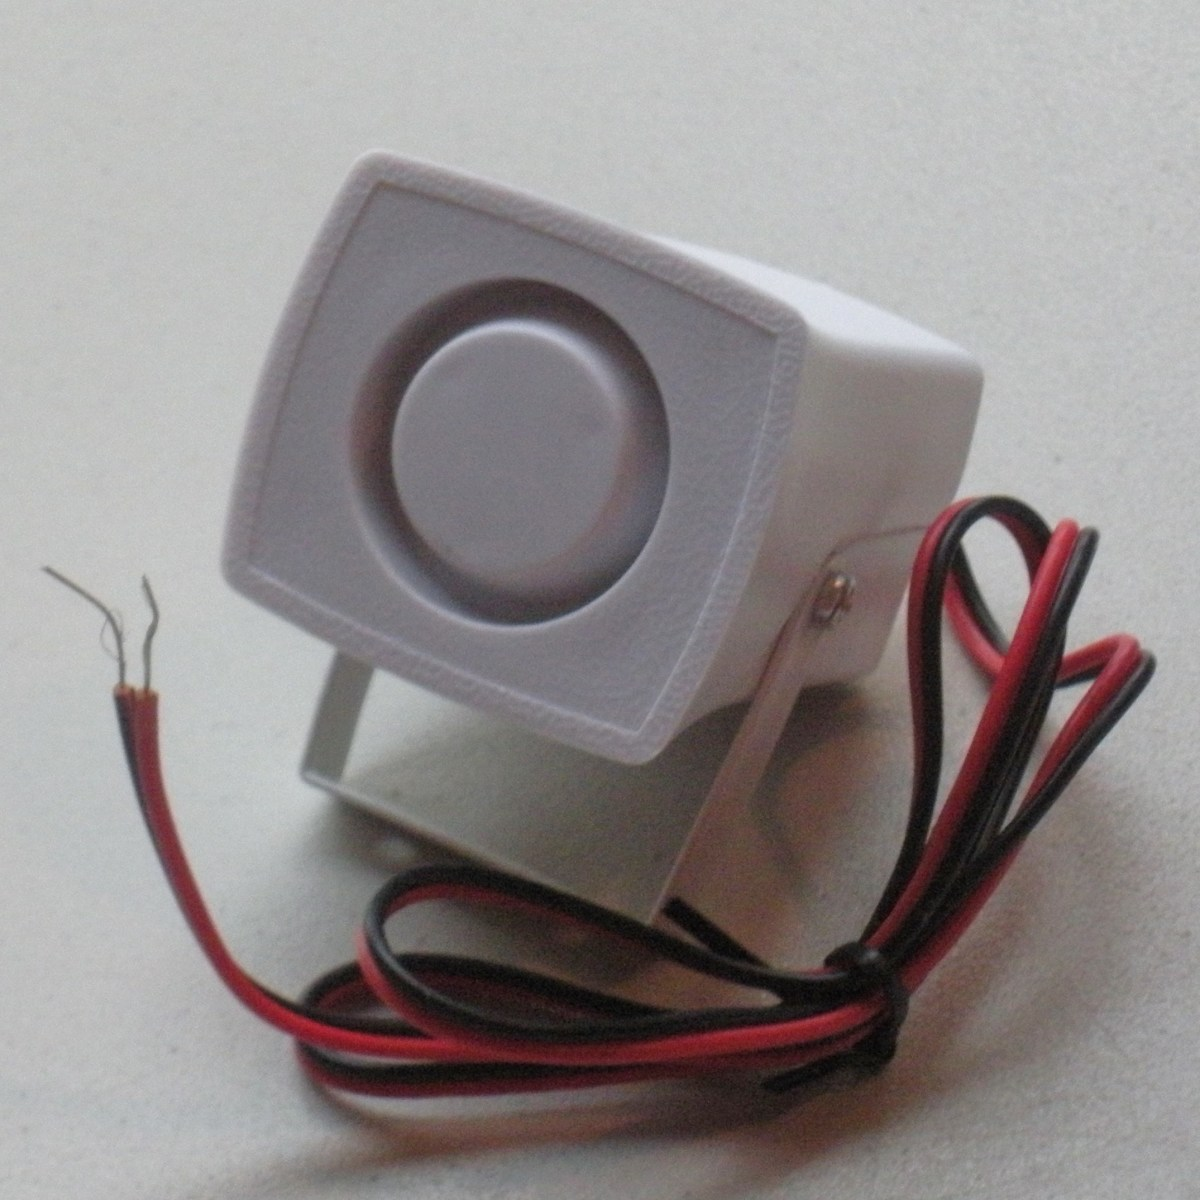 The speaker connects to the control panel with two wires.